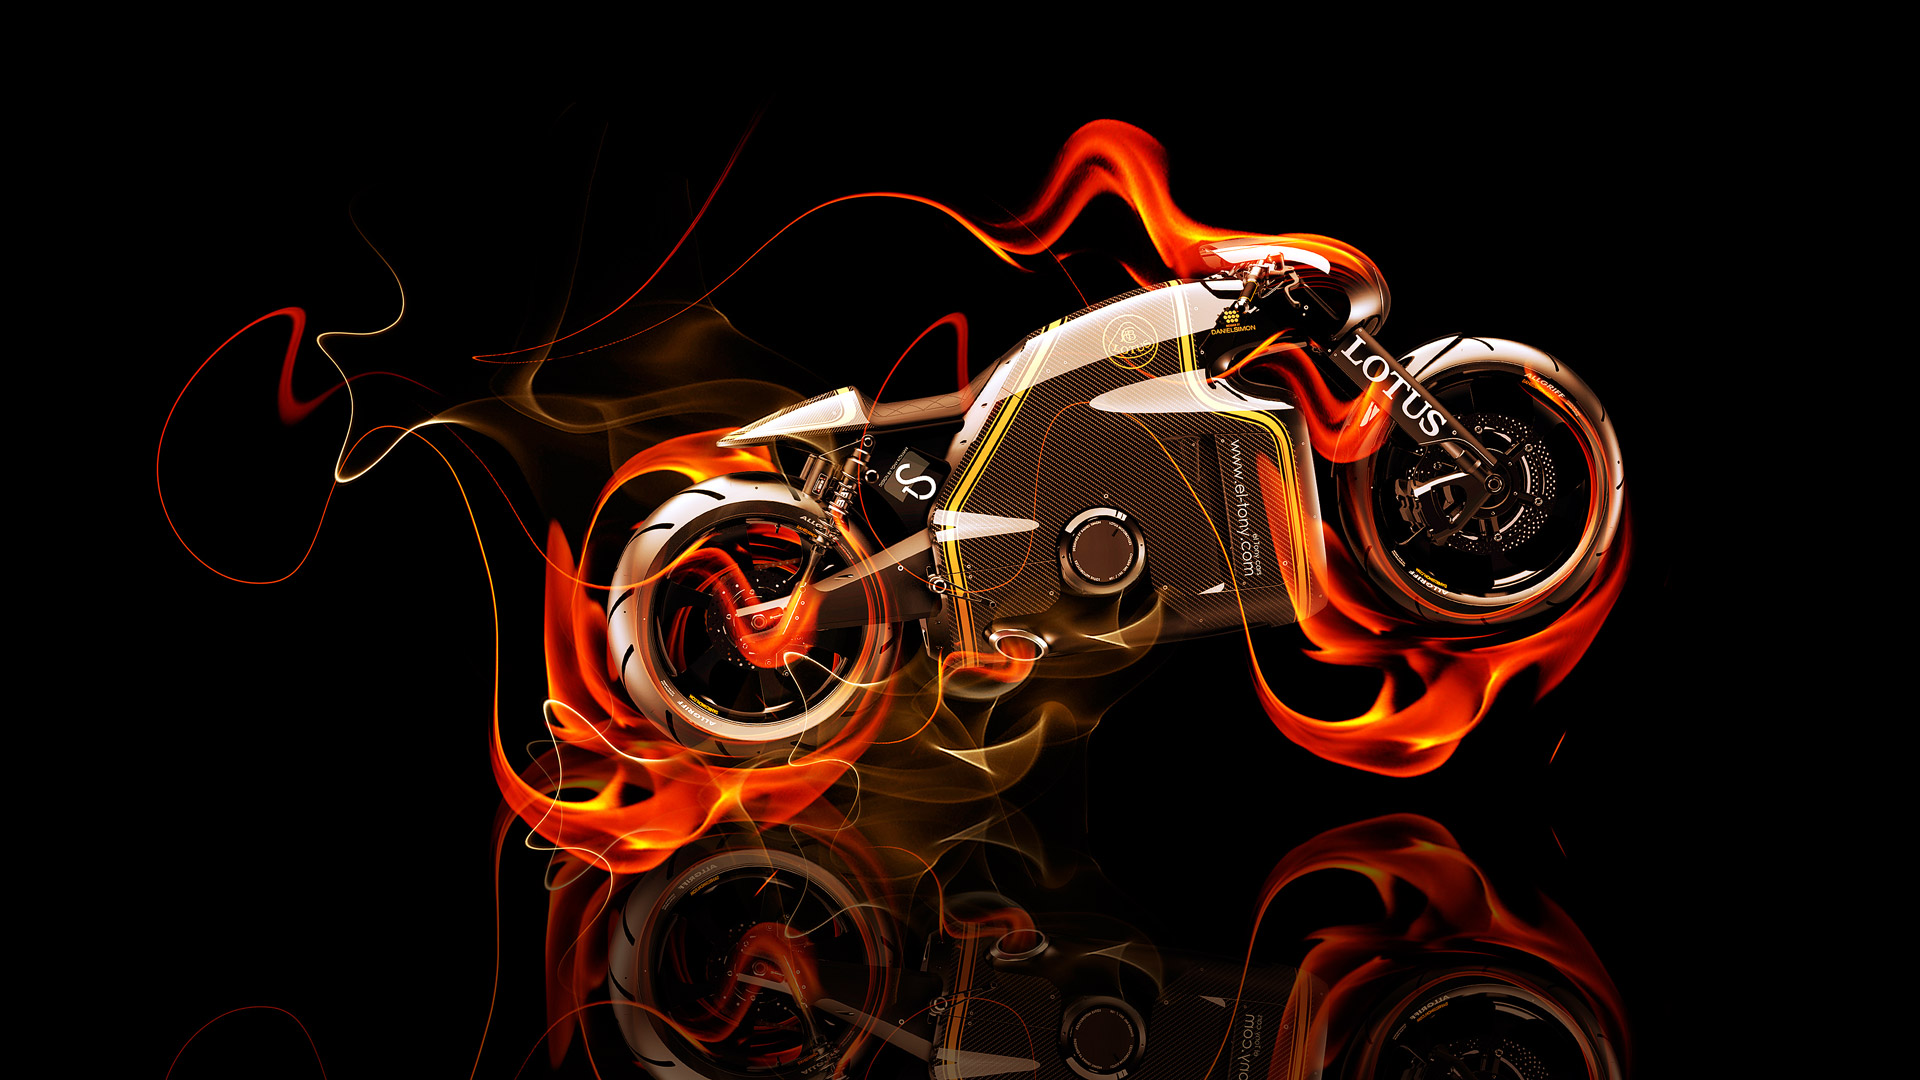 Exceptional Lotus C 01 Fire Abstract Bike 2014 HD